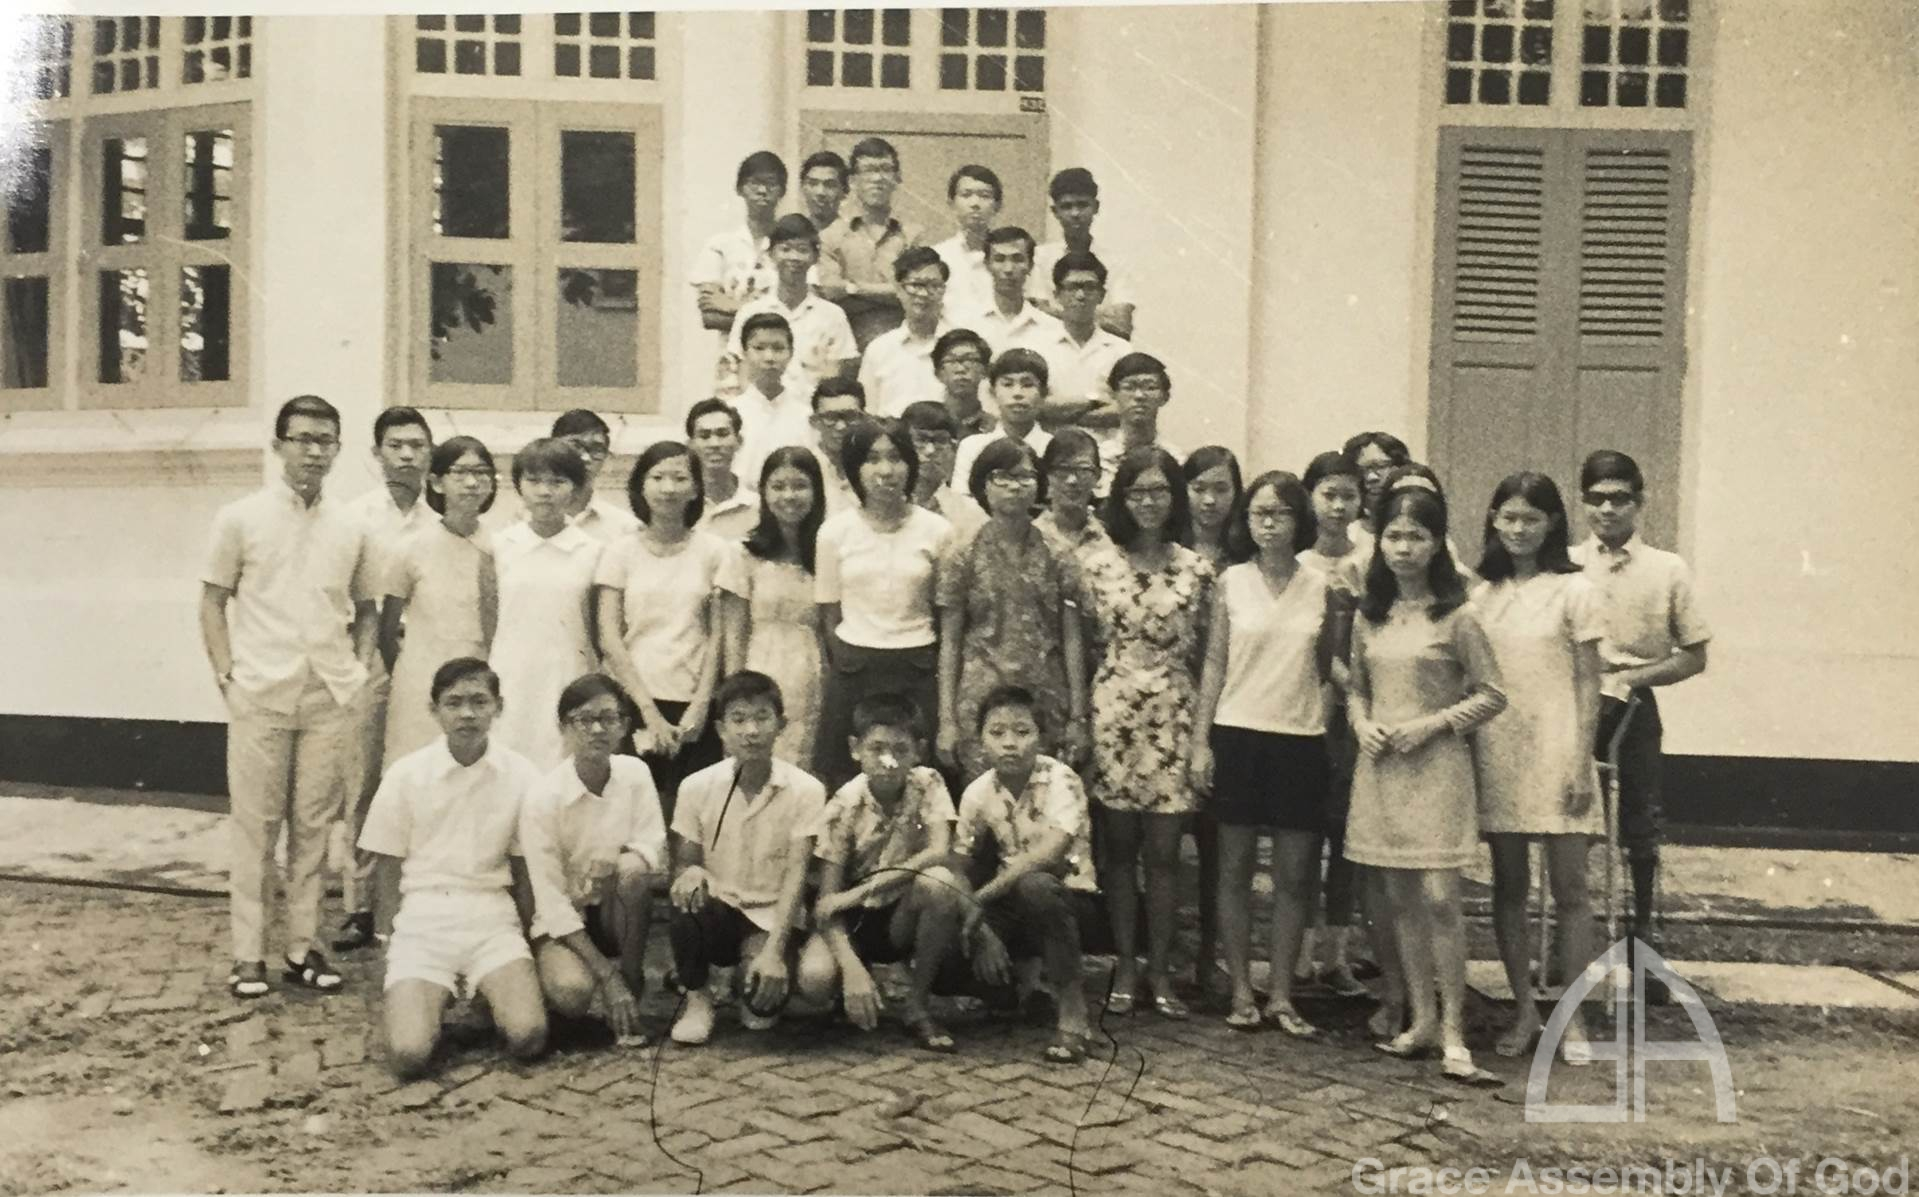 GRACE CA Camp @Bukit Panjang Government Bungalow 11 Nov 1971